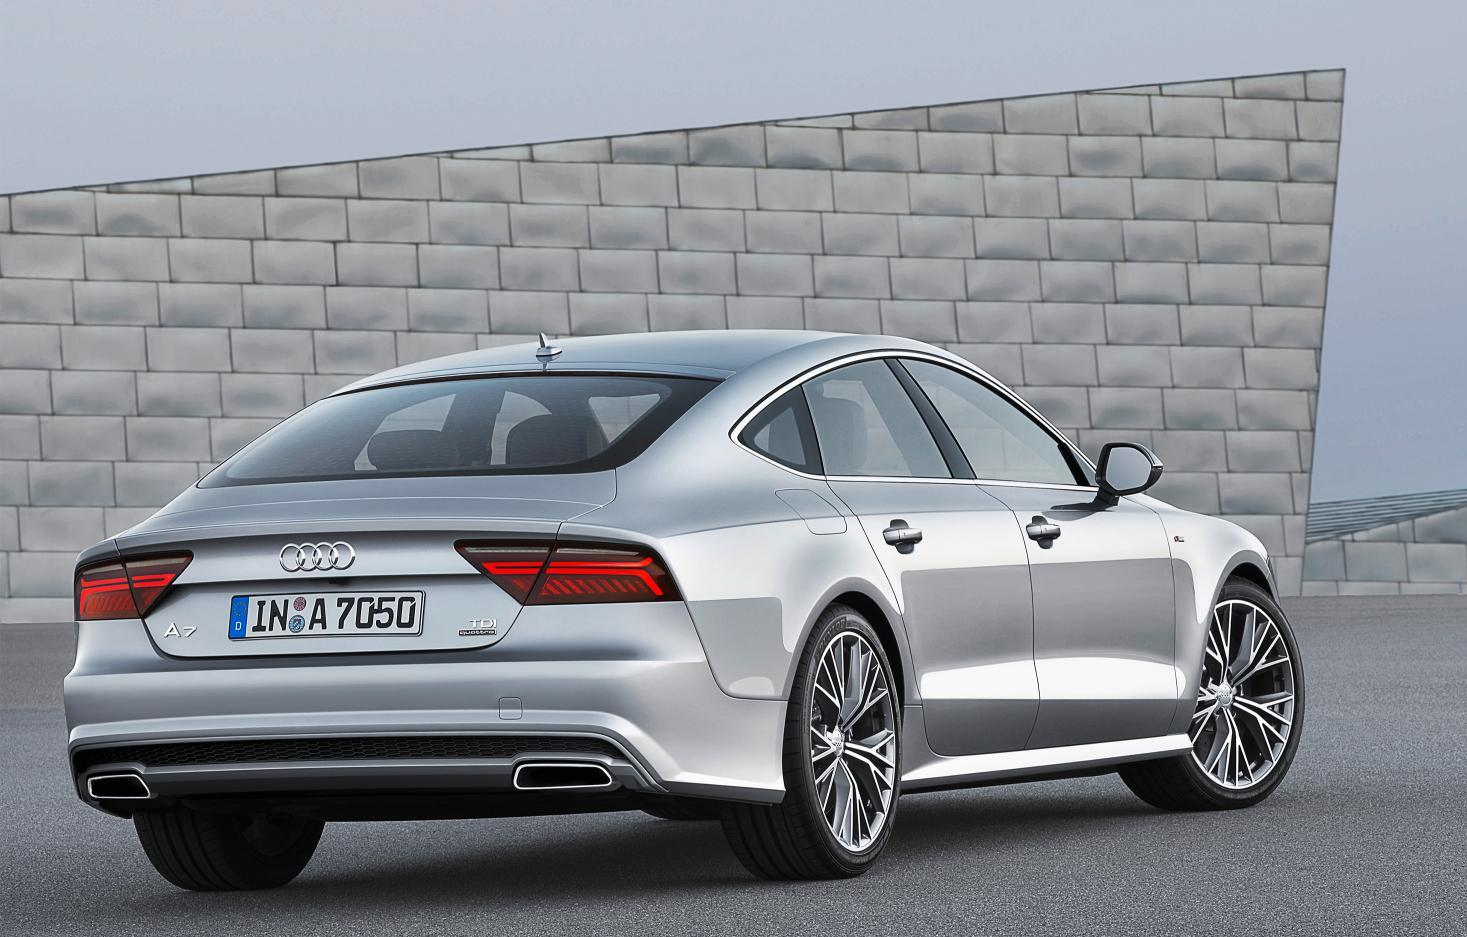 2015 Audi A7 Sportback Unveiled Pictures Inside India Car News Automobile S7 Of And Around The World Now Company Has Officially Vehicles Before They Will Go On Sale In Uk